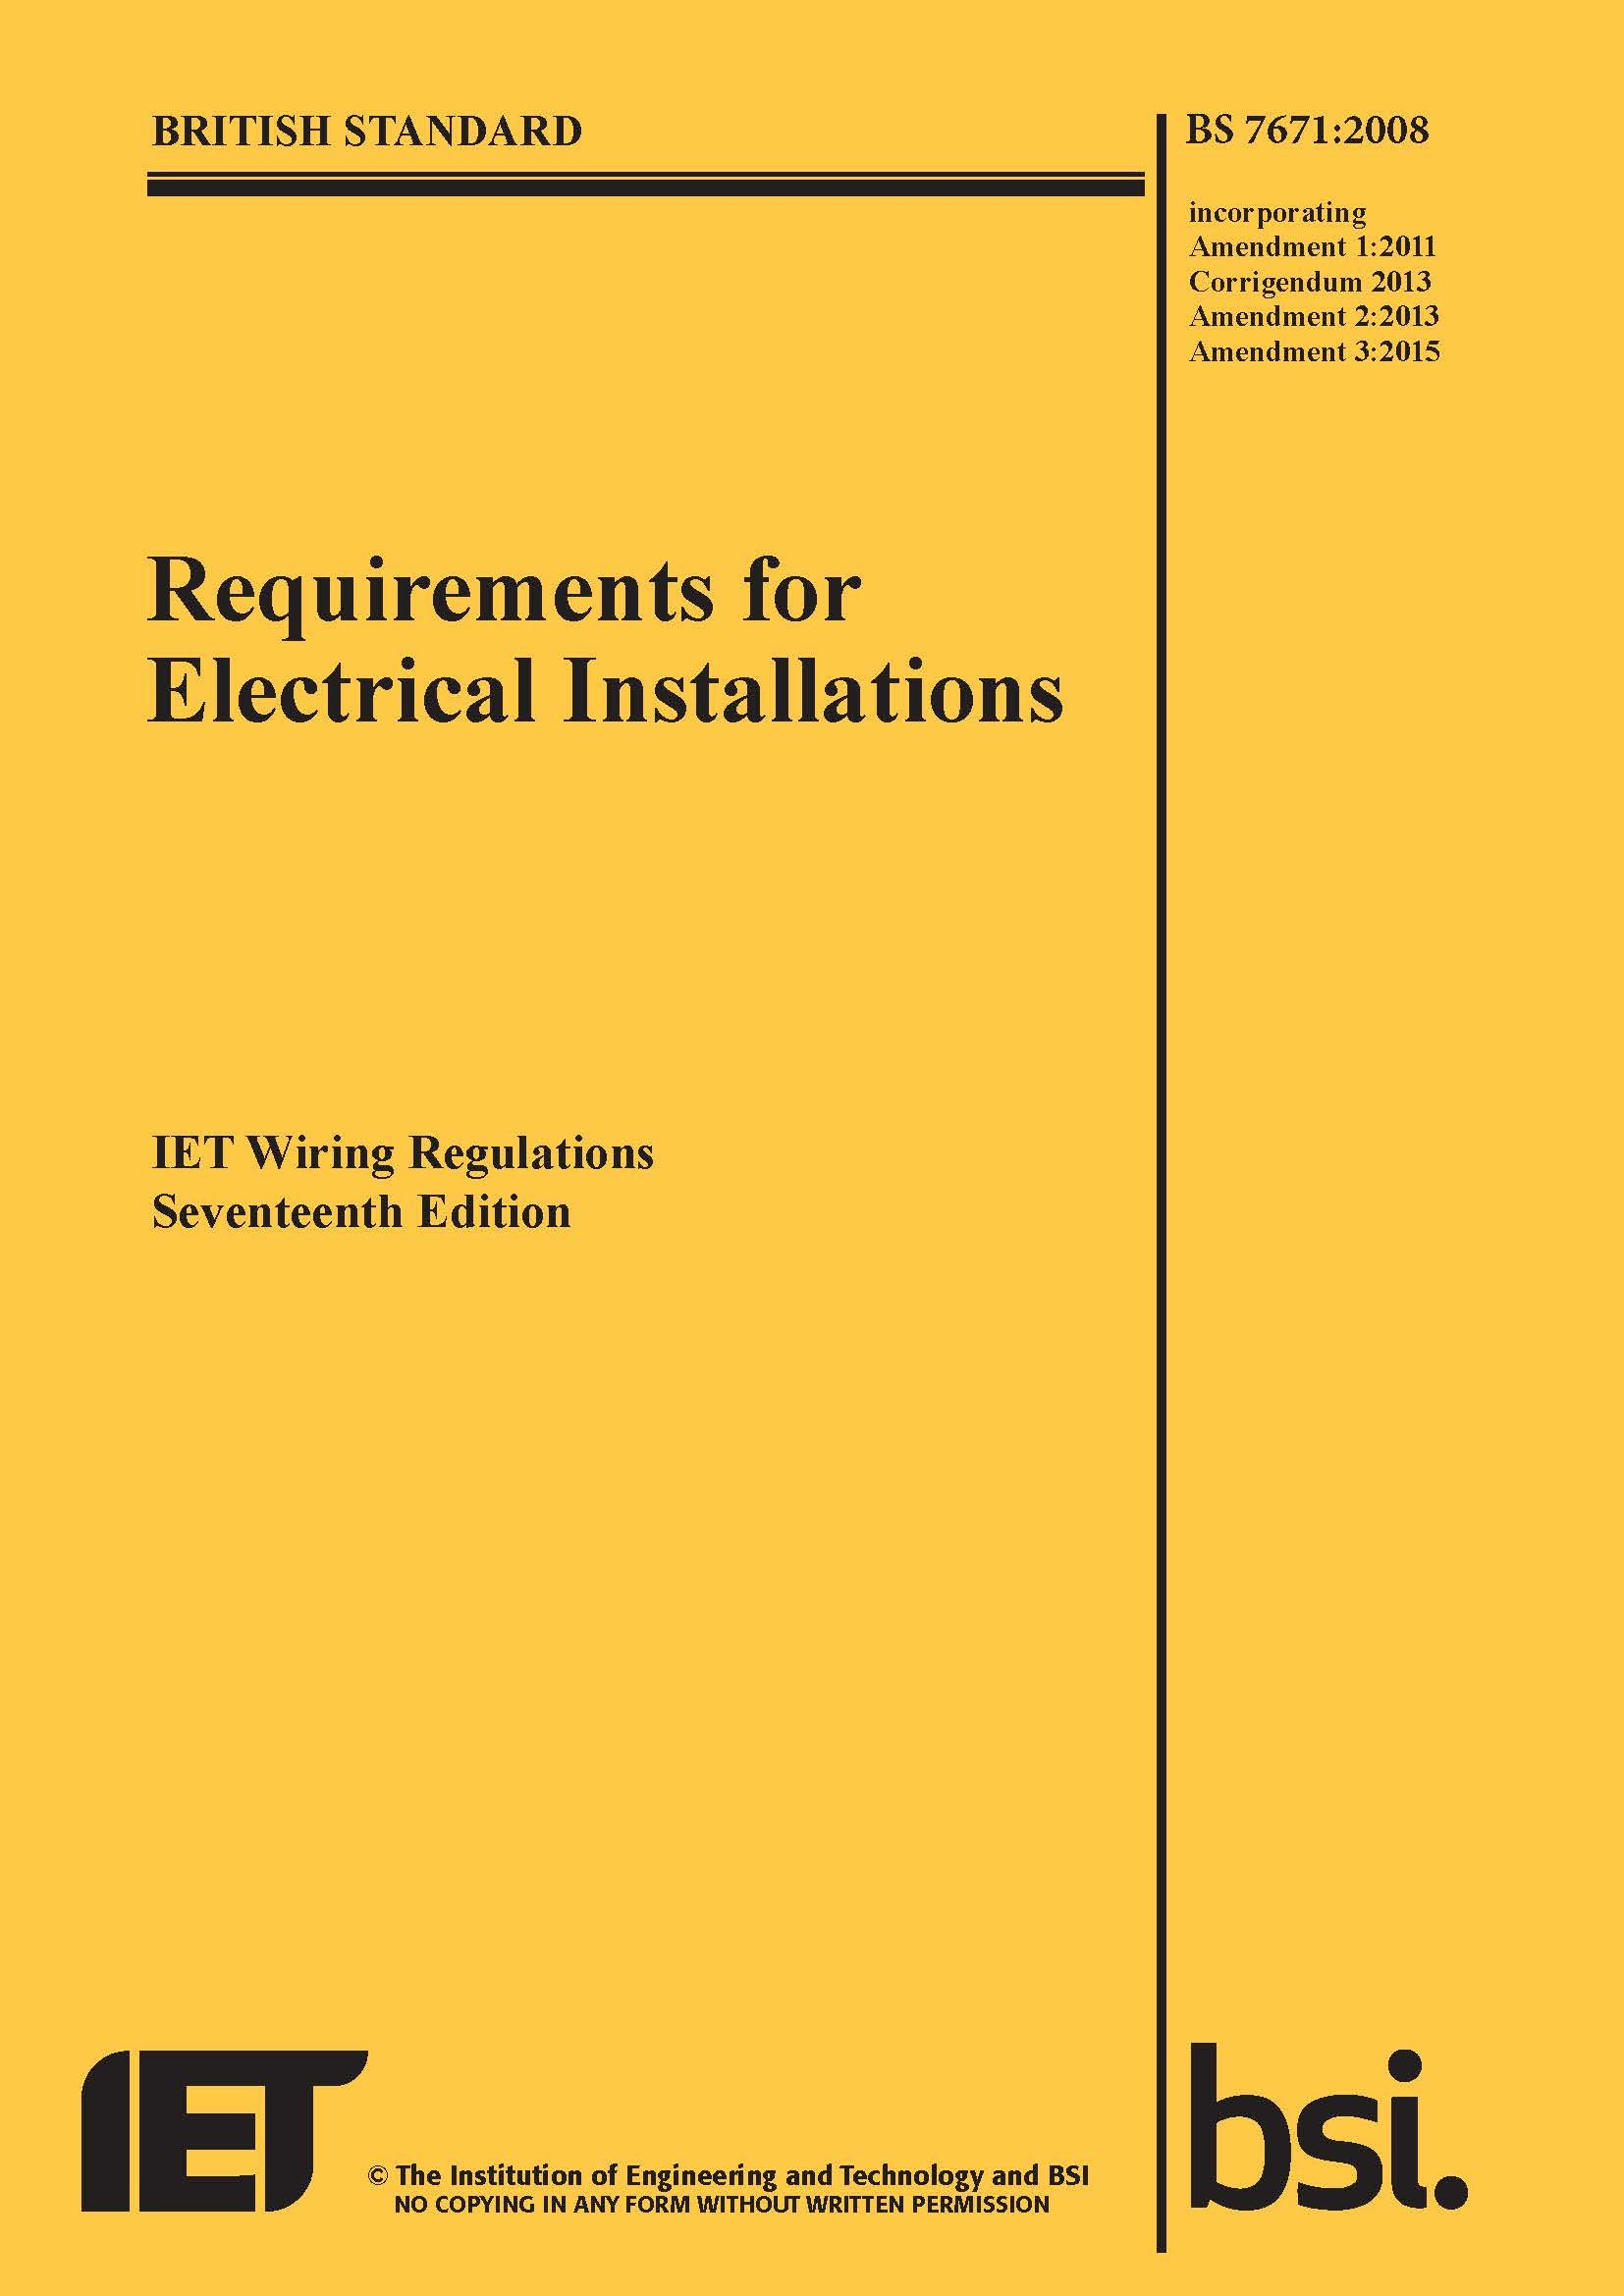 wiring regulations changes static electrical services blog rh staticelectricalservices com household wiring regulations domestic wiring regulations uk